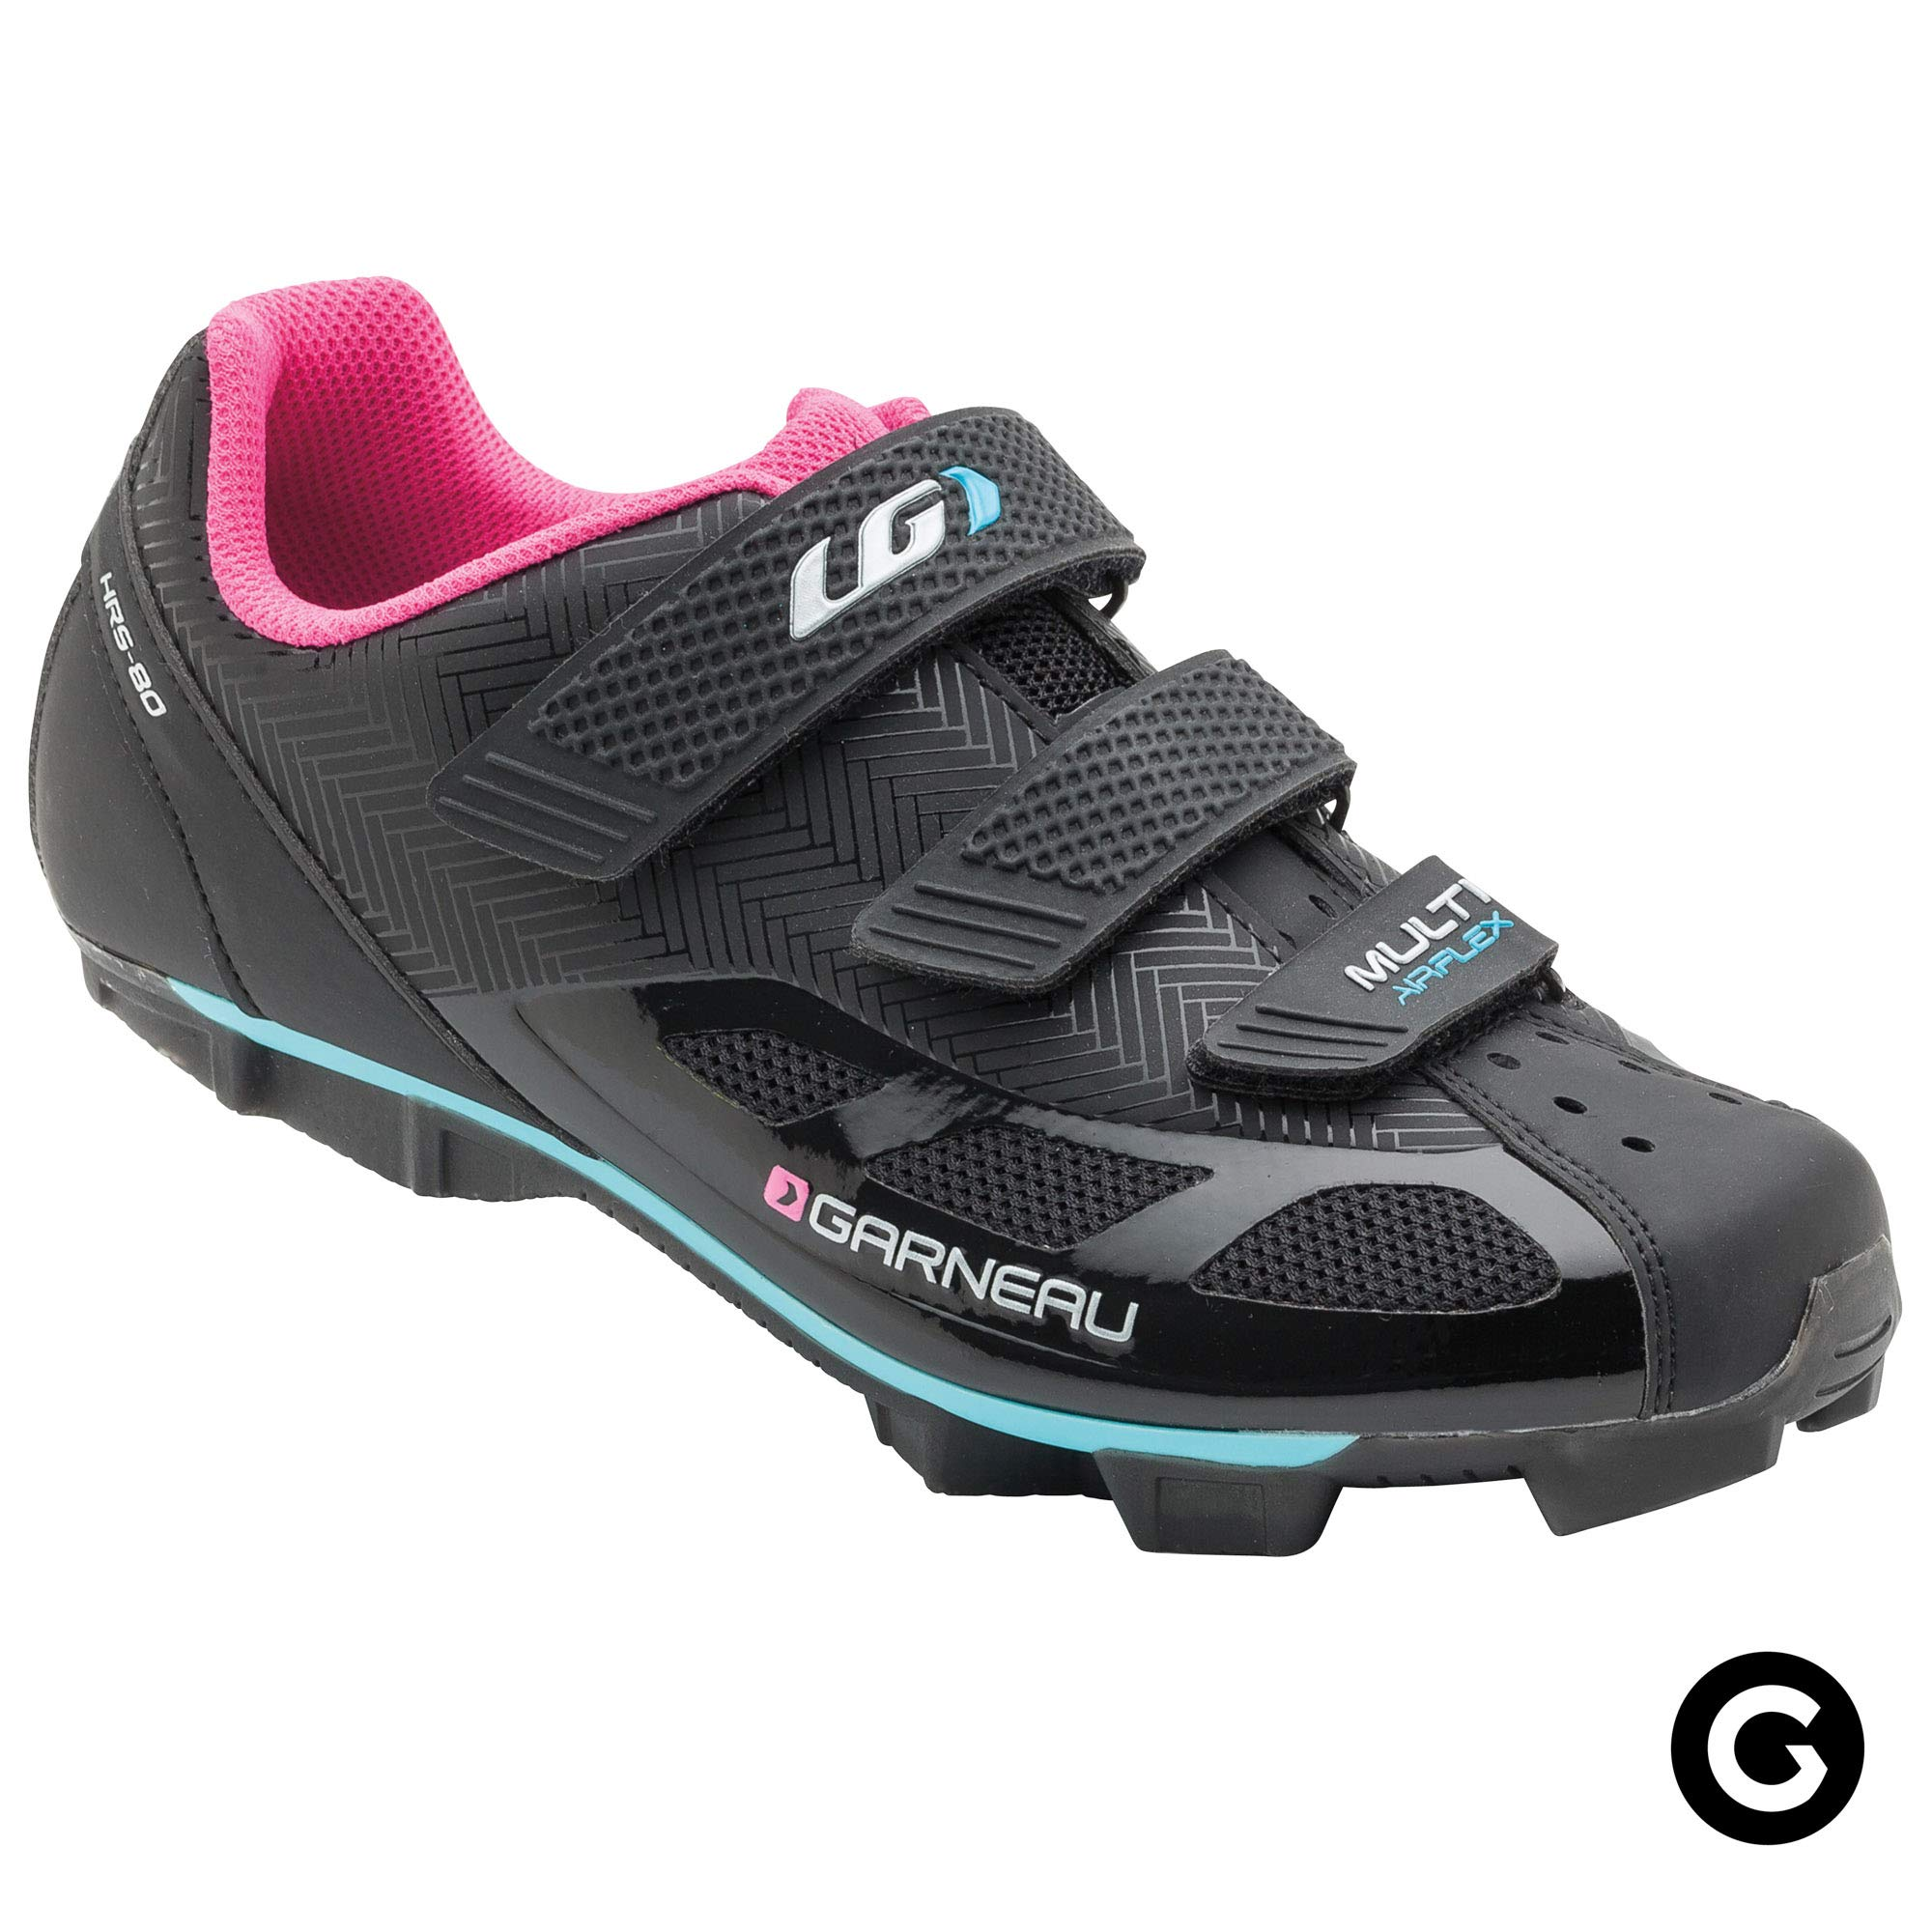 Louis Garneau Women's Multi Air Flex Bike Shoes for Indoor Cycling, Commuting and MTB, SPD Cleats Compatible with MTB Pedals, Black/Pink, US (11.5), EU (43) by Louis Garneau